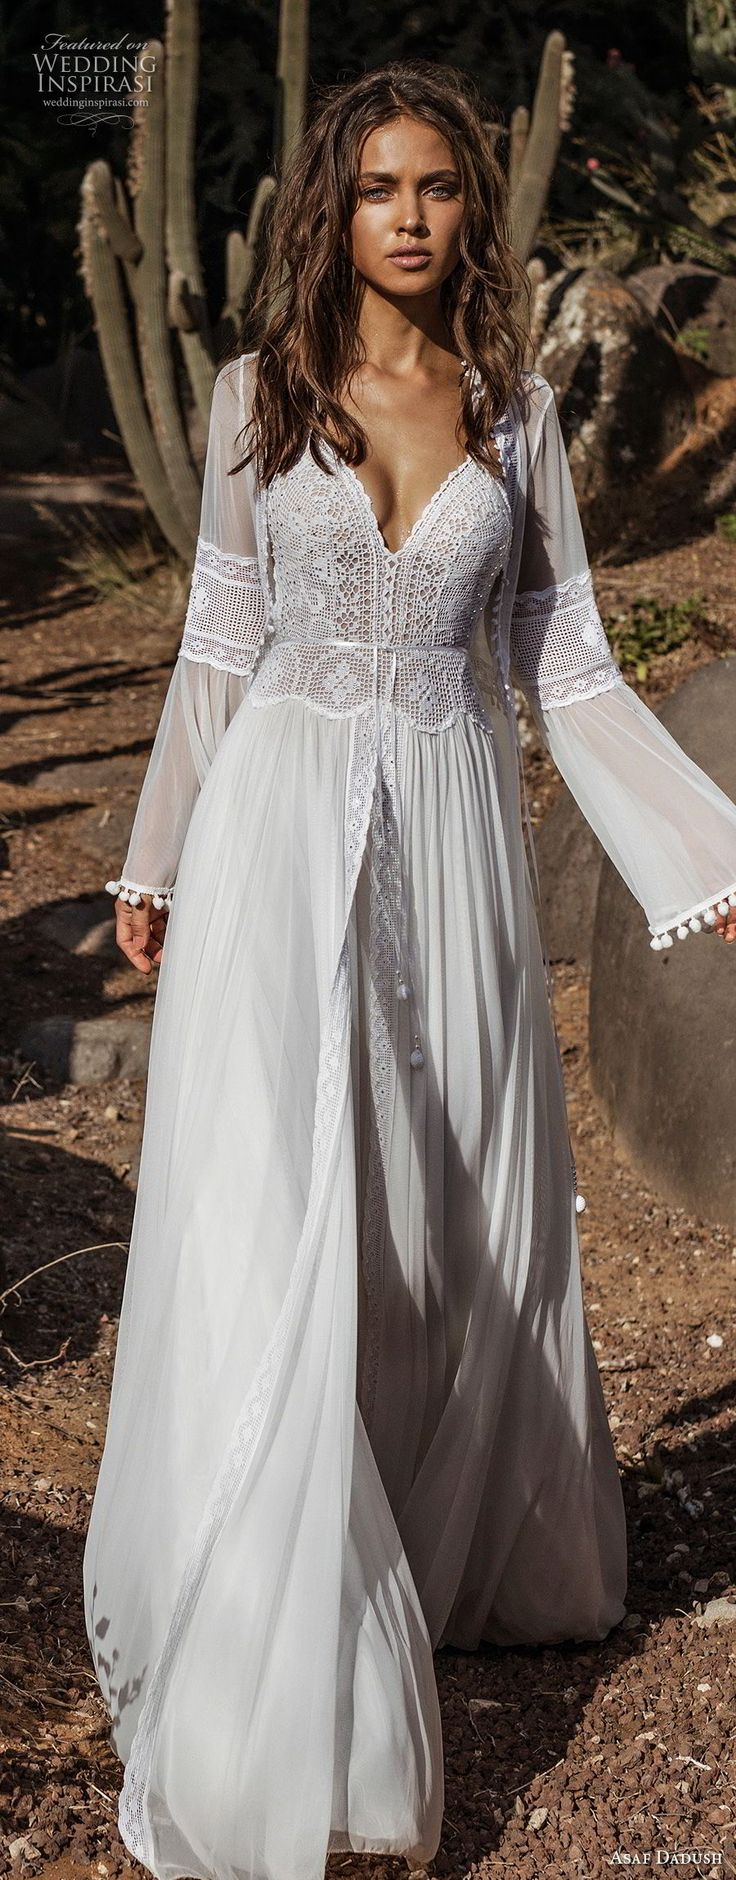 asaf dadush 2018 bridal long lantern sleeves thin strap sweetheart neckline heavily embellished bodice romantic bohemian soft a  line wedding dress sweep train (1) mv lv -- Asaf Dadush 2018 Wedding Dresses